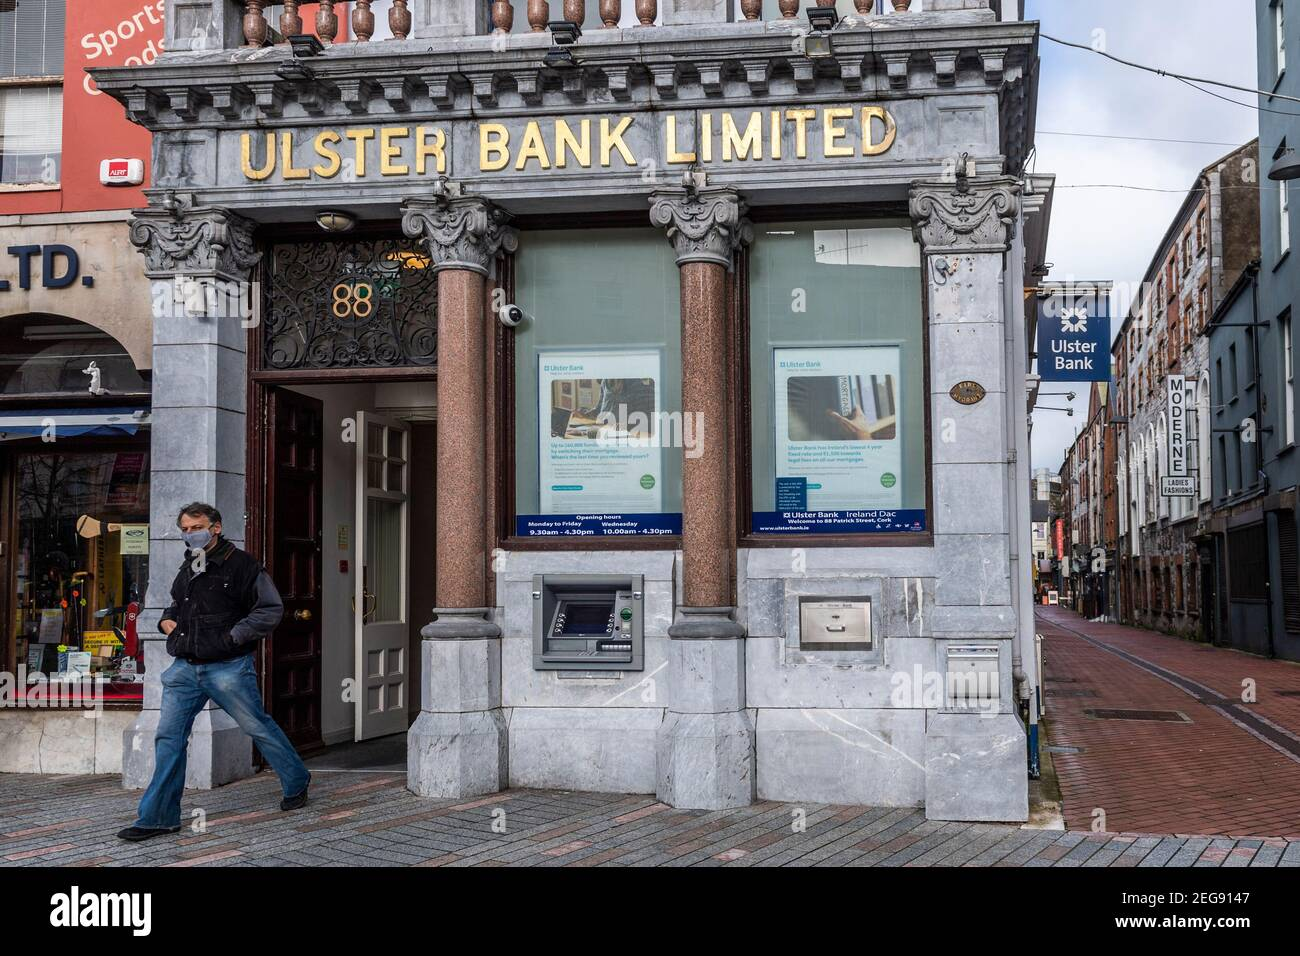 cork-ireland-18th-feb-2021-ulster-bank-which-is-part-of-the-rbs-group-is-considering-exiting-the-republic-of-ireland-potentially-cutting-2800-jobs-and-88-branches-a-decision-will-be-made-today-by-parent-company-natwest-credit-ag-newsalamy-live-news-2EG9147.jpg